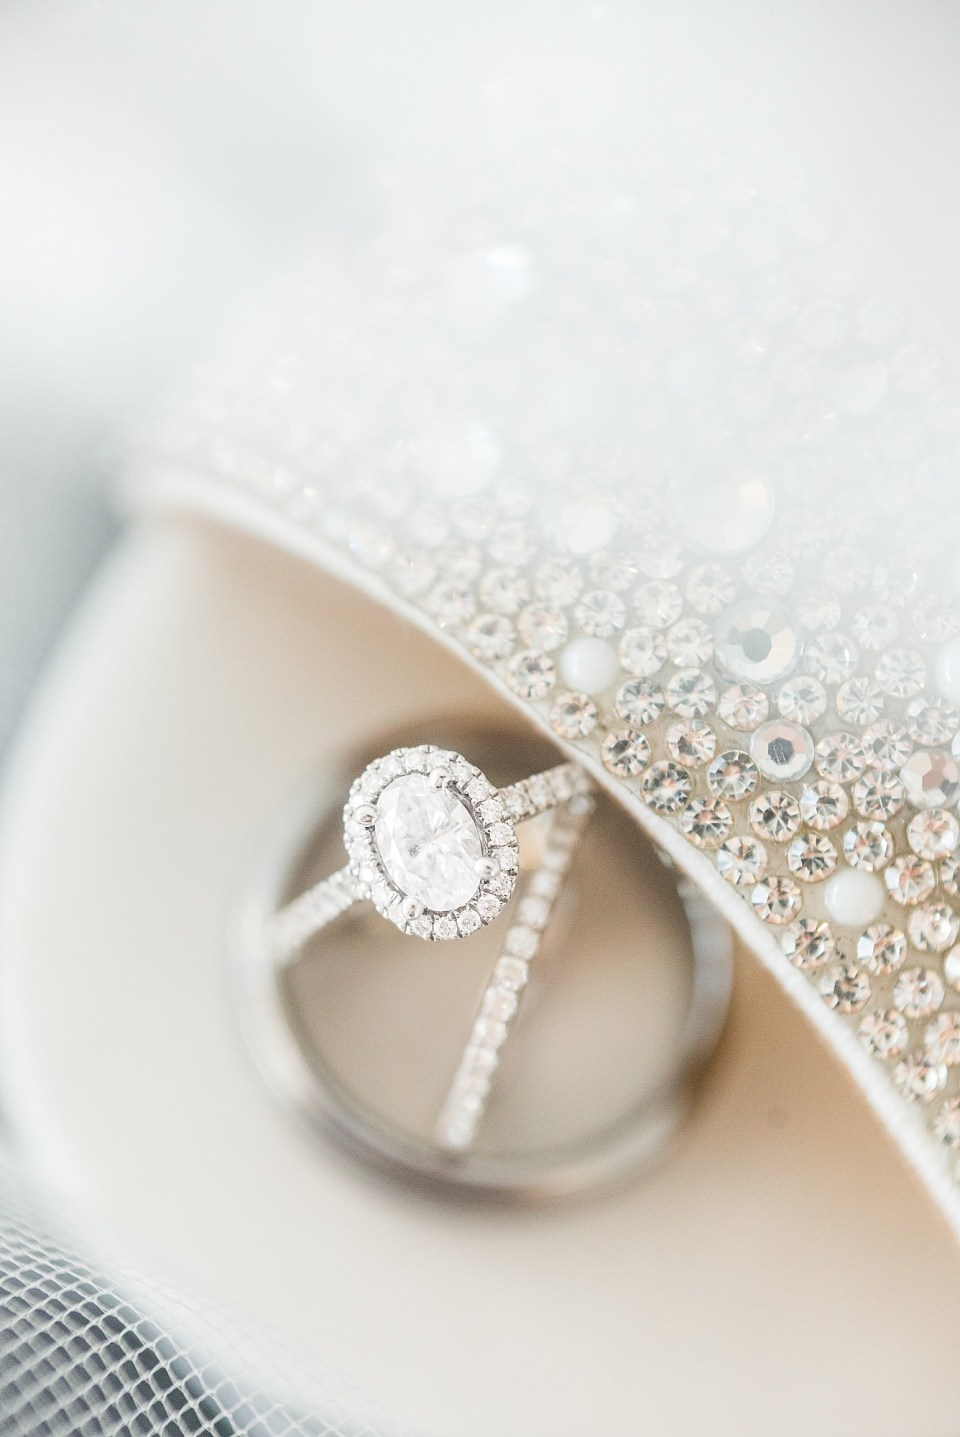 Ring and shoe details for a Glamorous Wedding at the Avalon